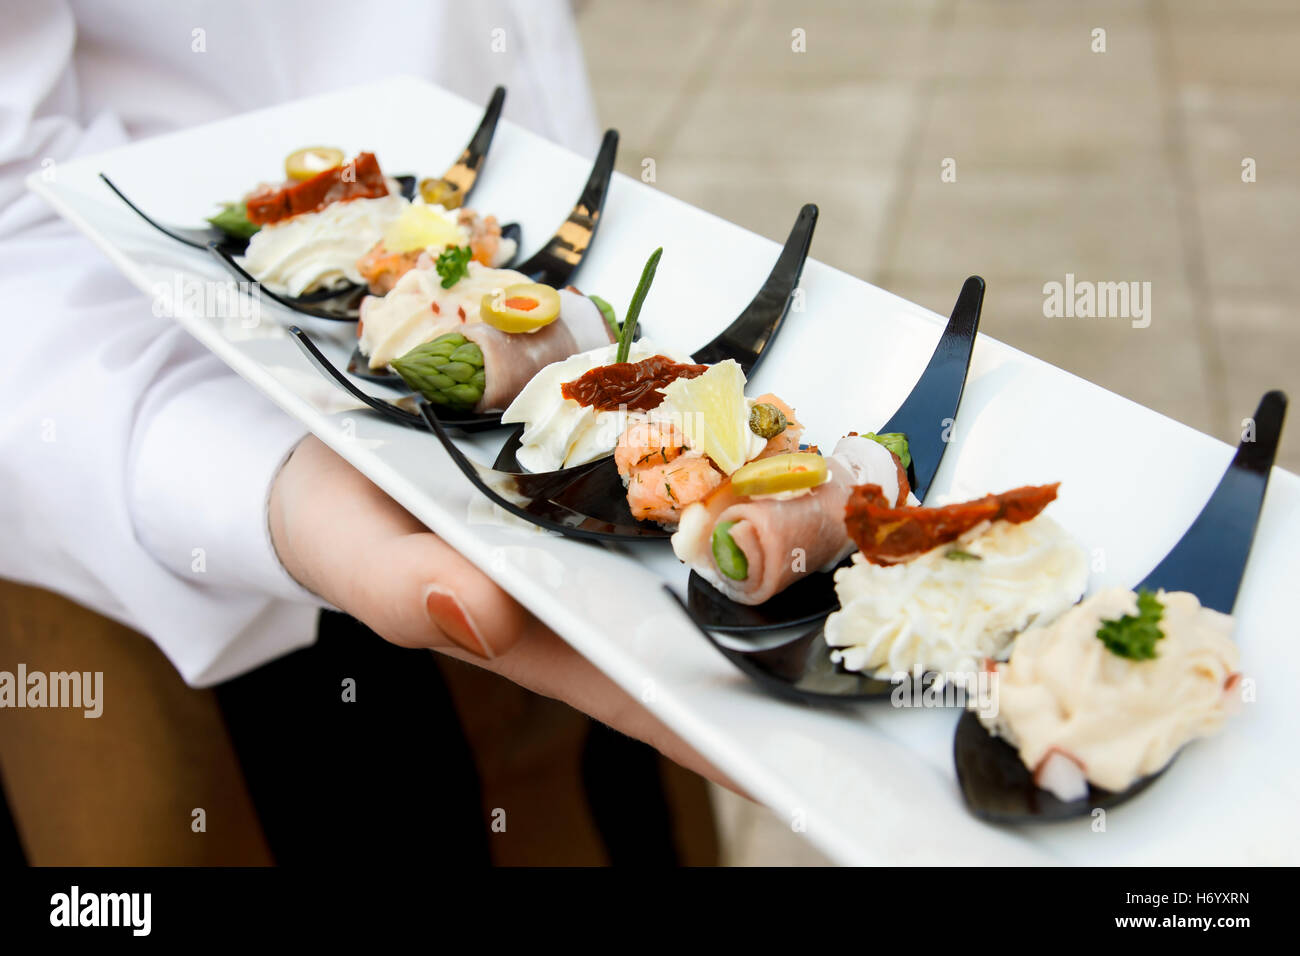 Detail of waiter holding canapes on plastic spoons. - Stock Image